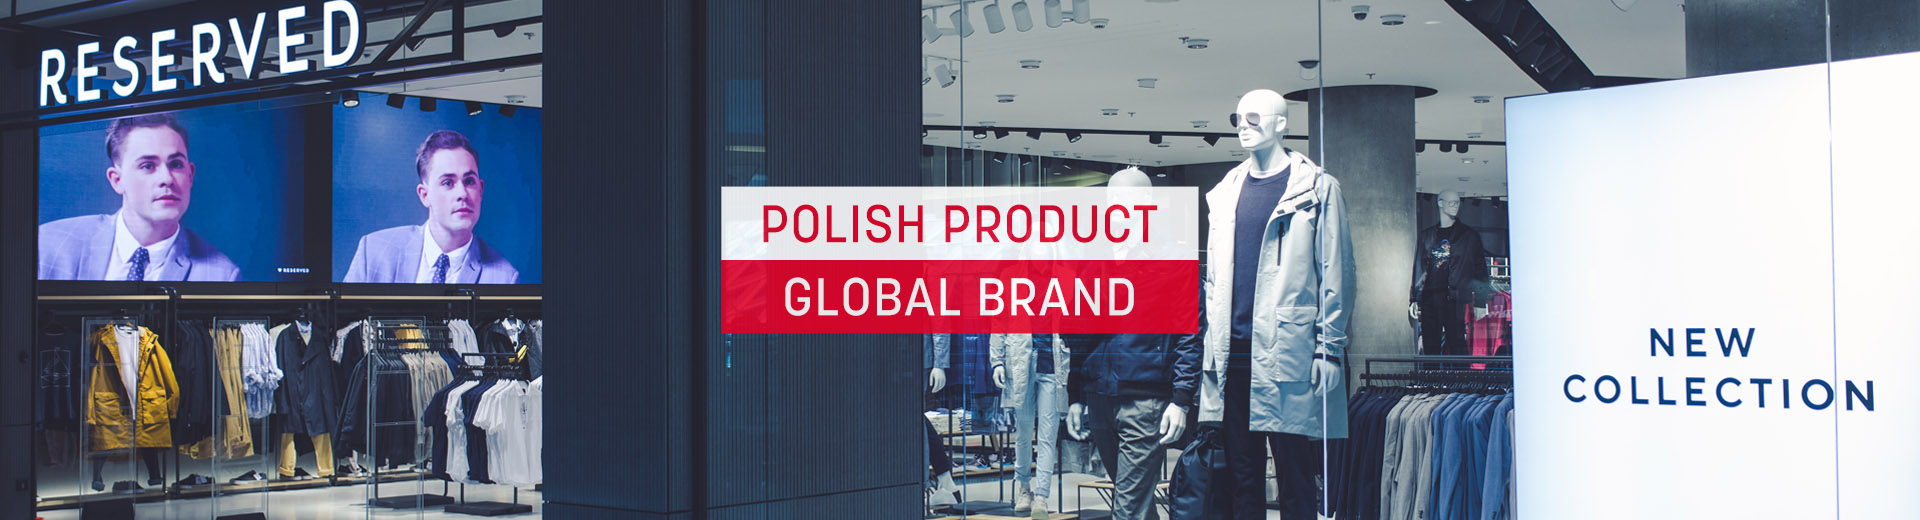 LPP IS A POLISH CLOTHING COMPANY